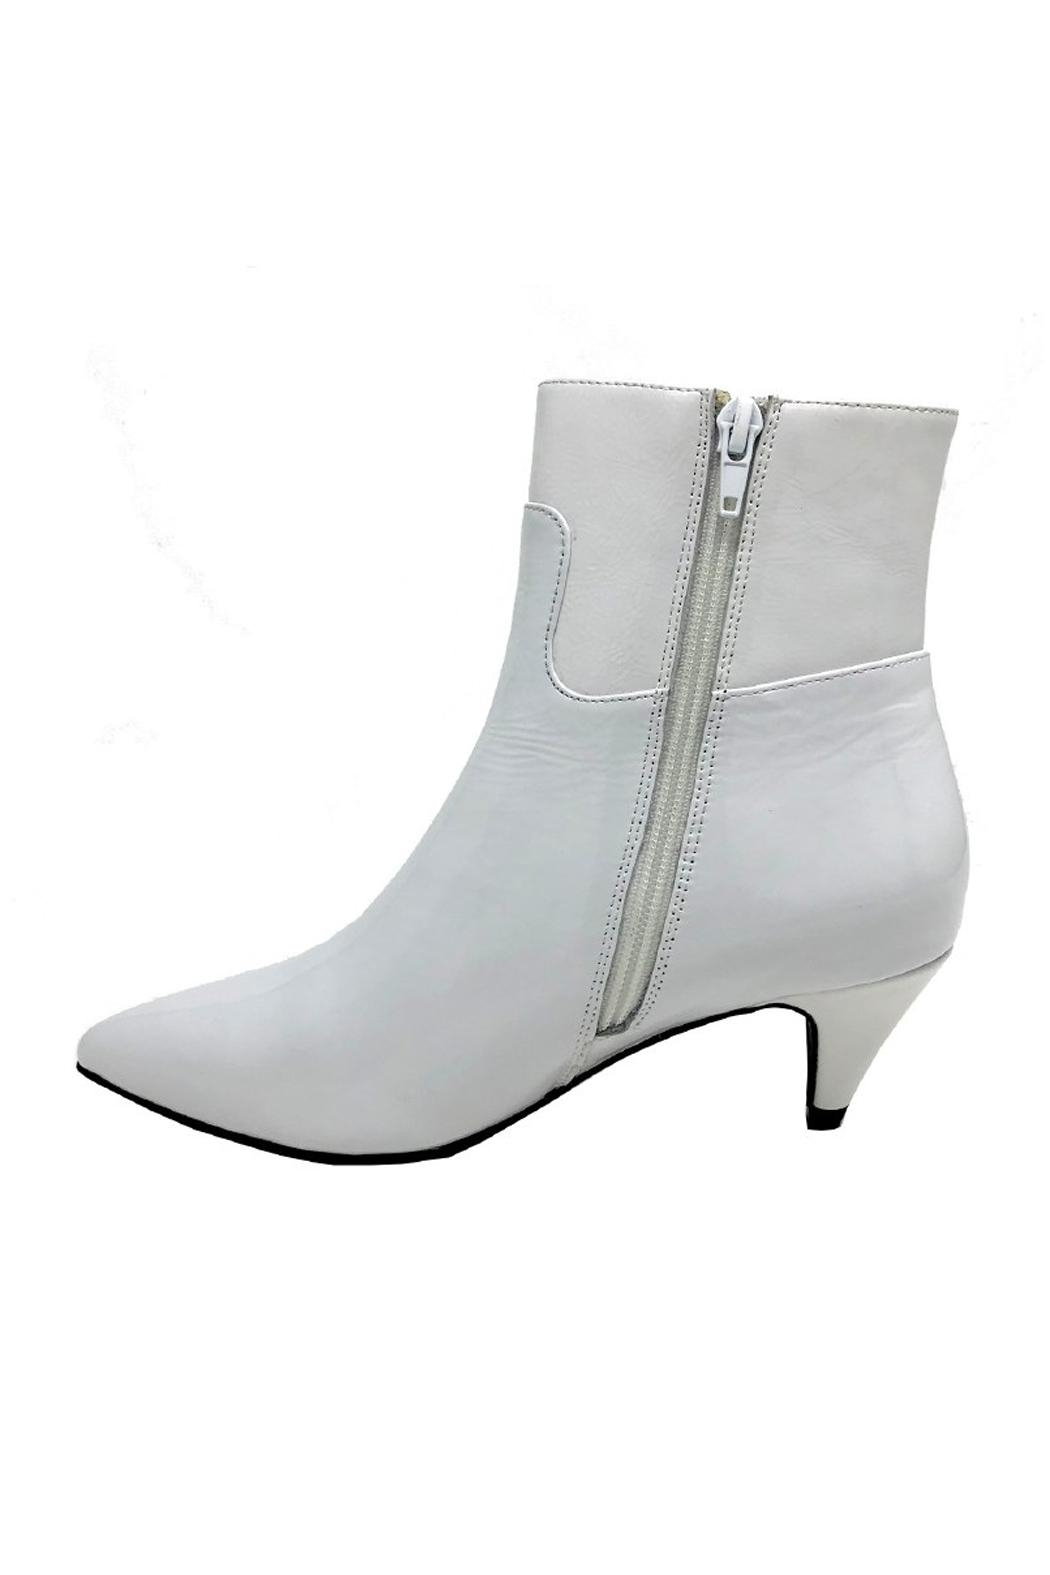 Jeffrey Campbell White Patent Boot - Front Full Image